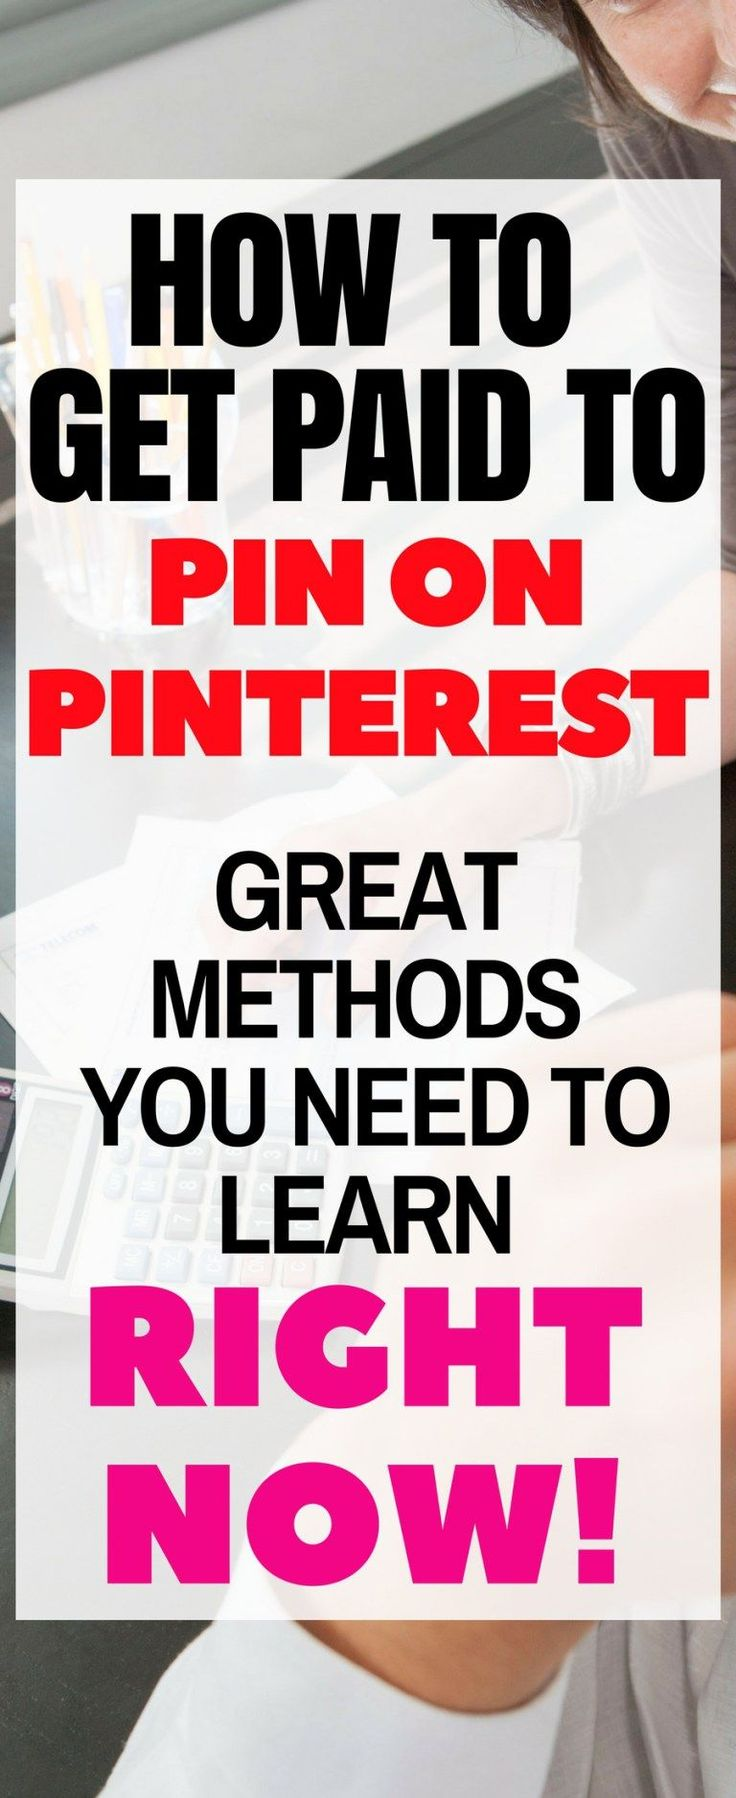 How To Make Money On Pinterest: Beginners Edition …